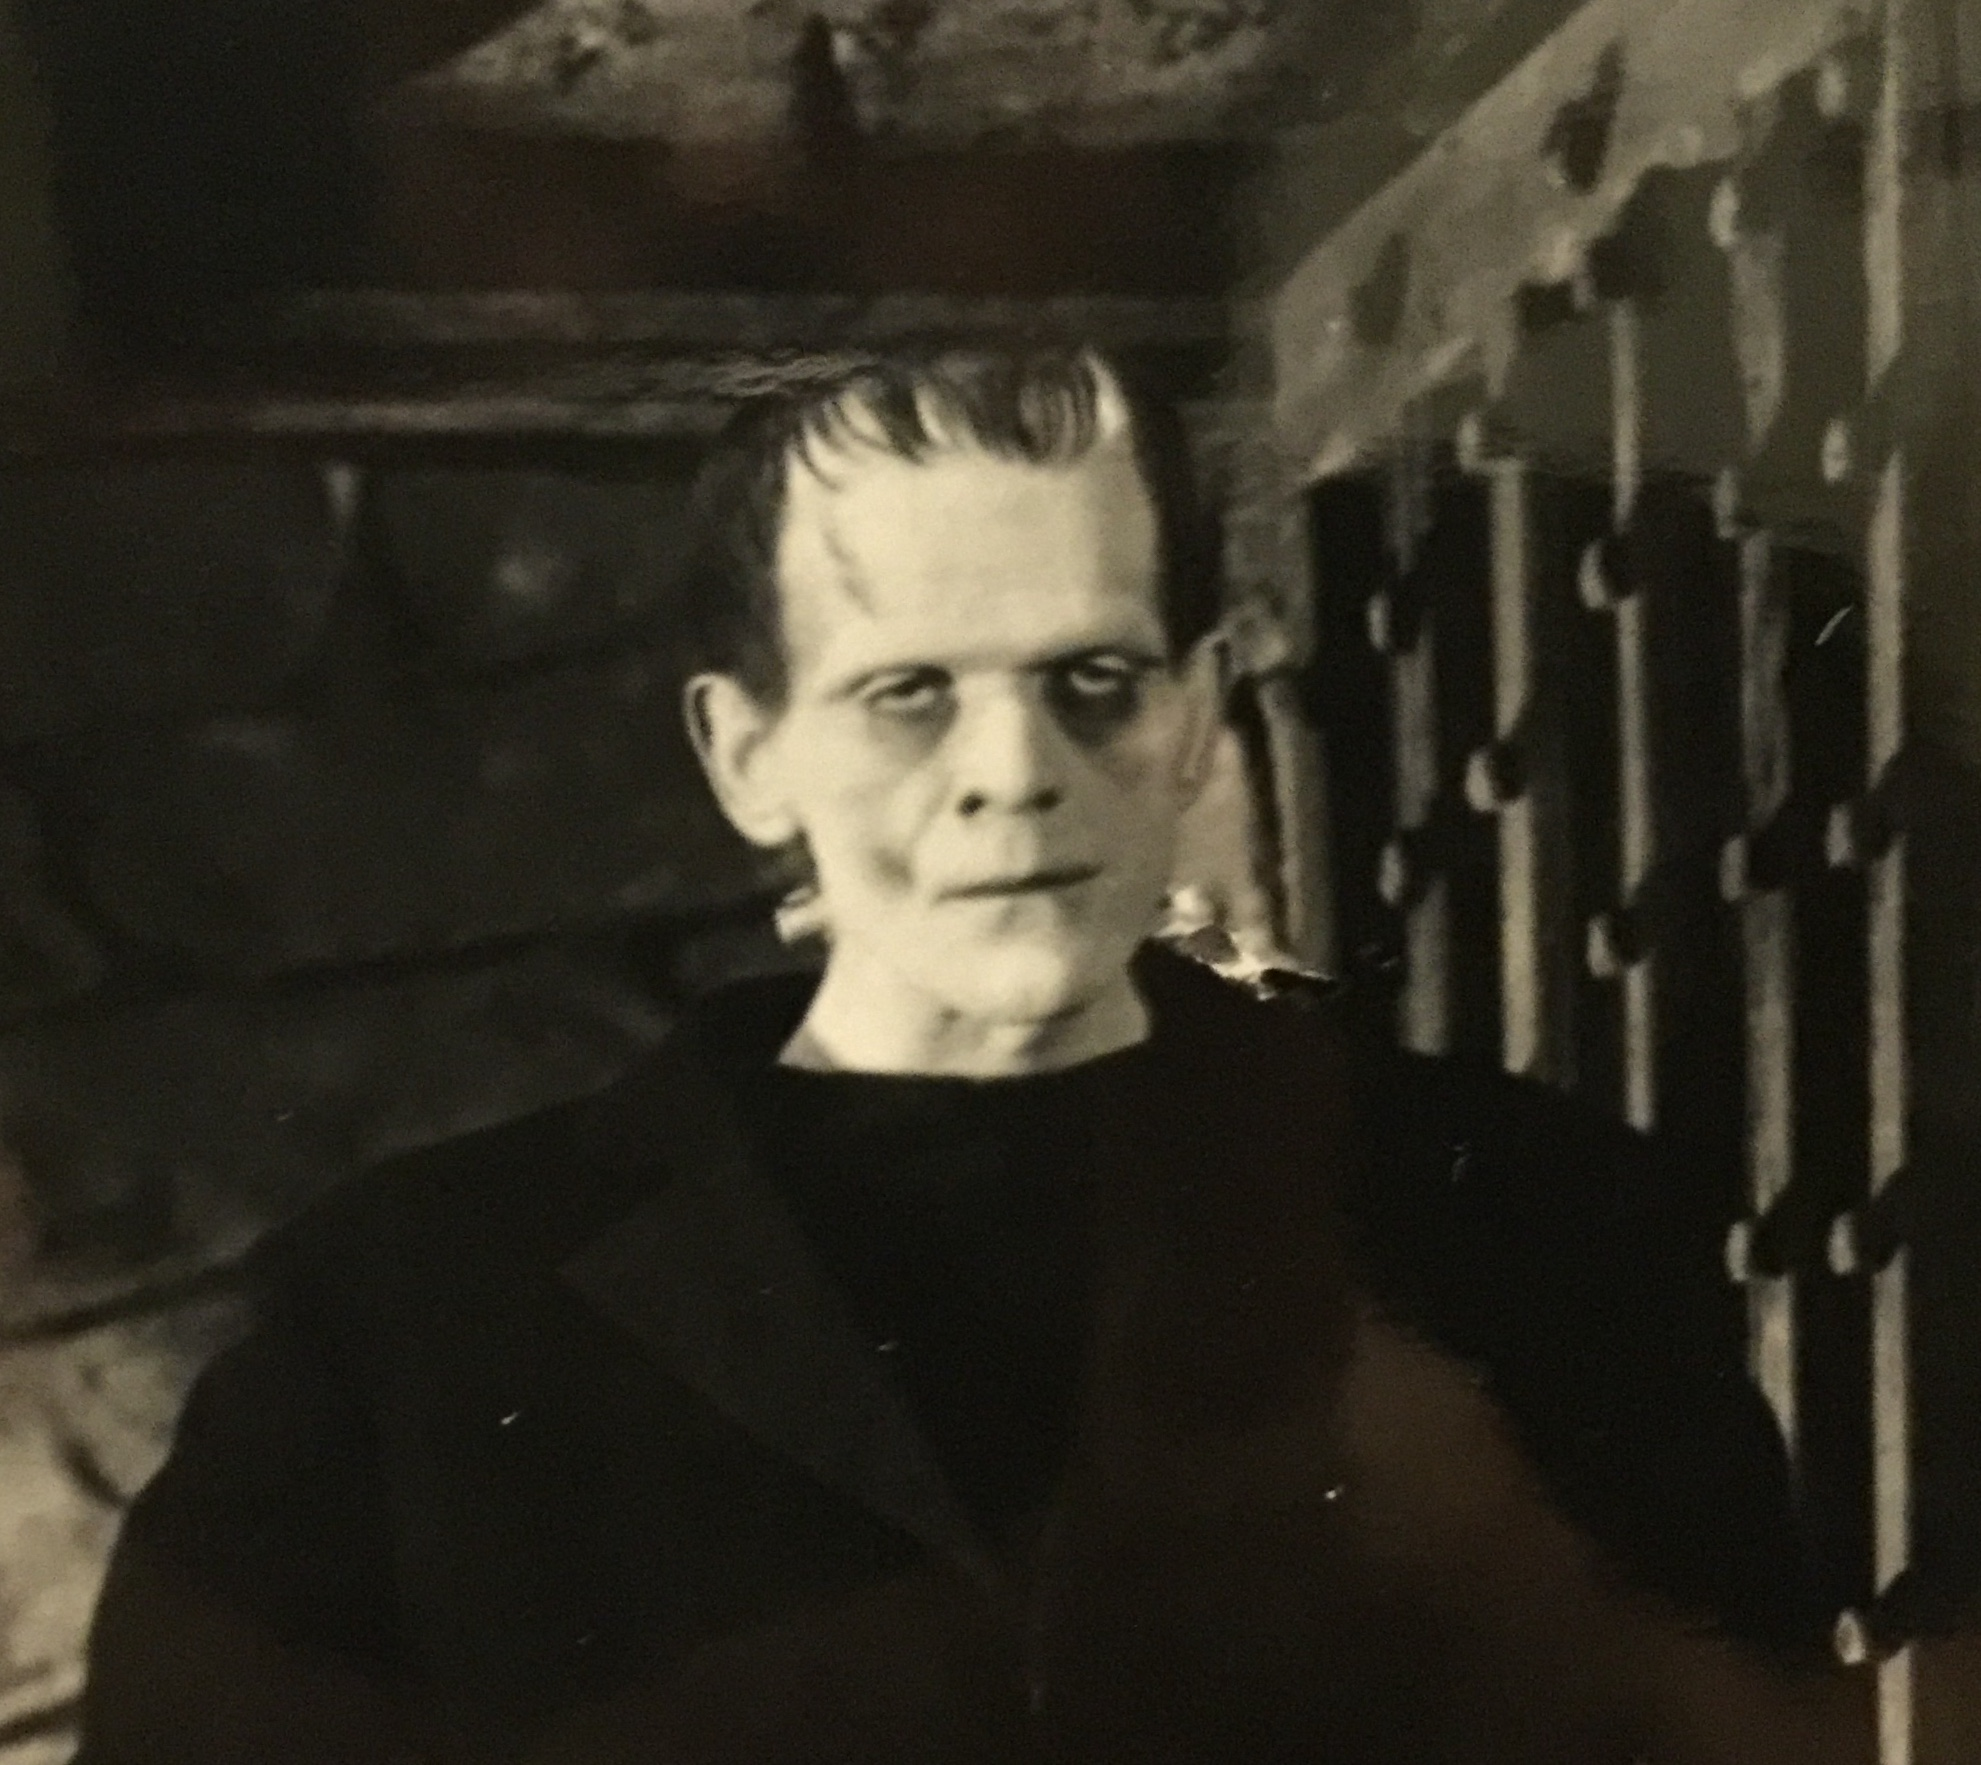 Karloff as Frankenstein